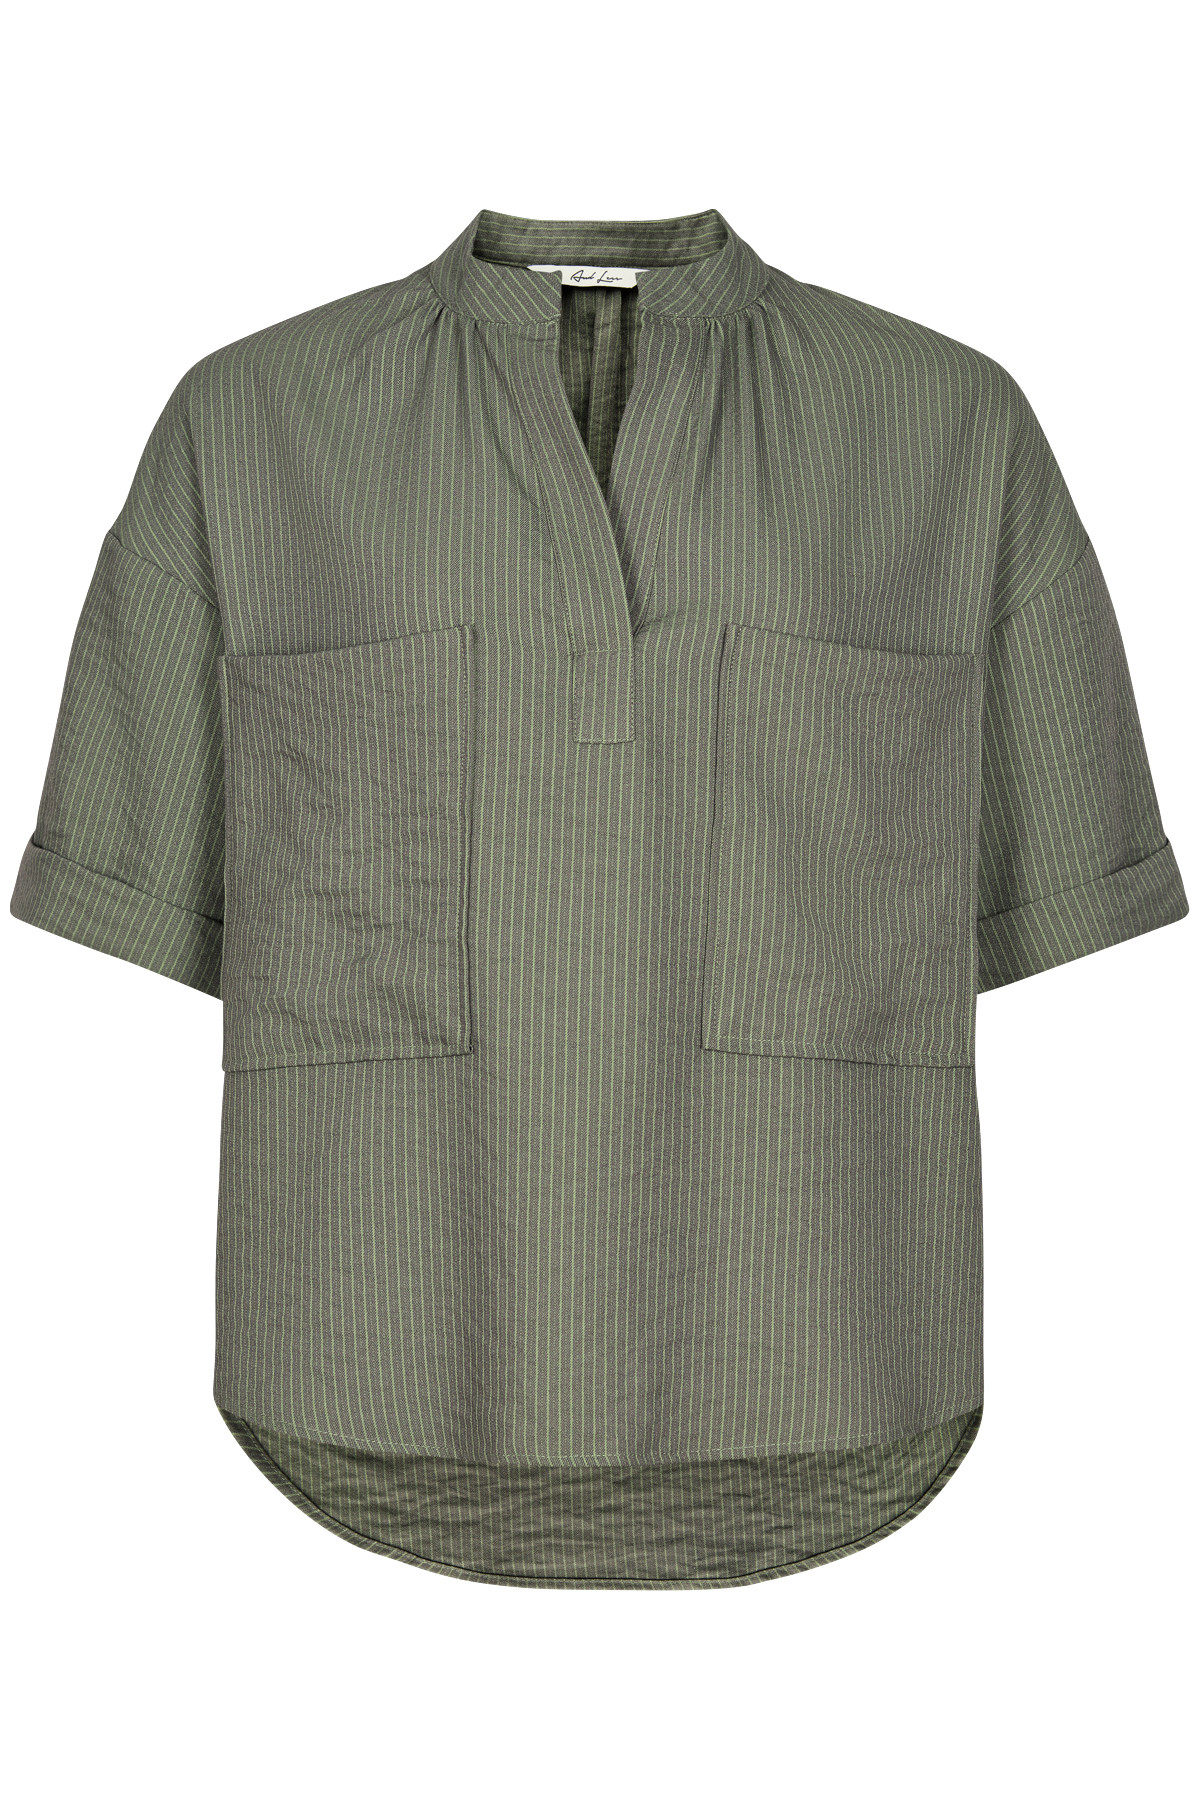 Image of   AND LESS ORIBELLA BLUSE 5219017 (Castor Green, 36)